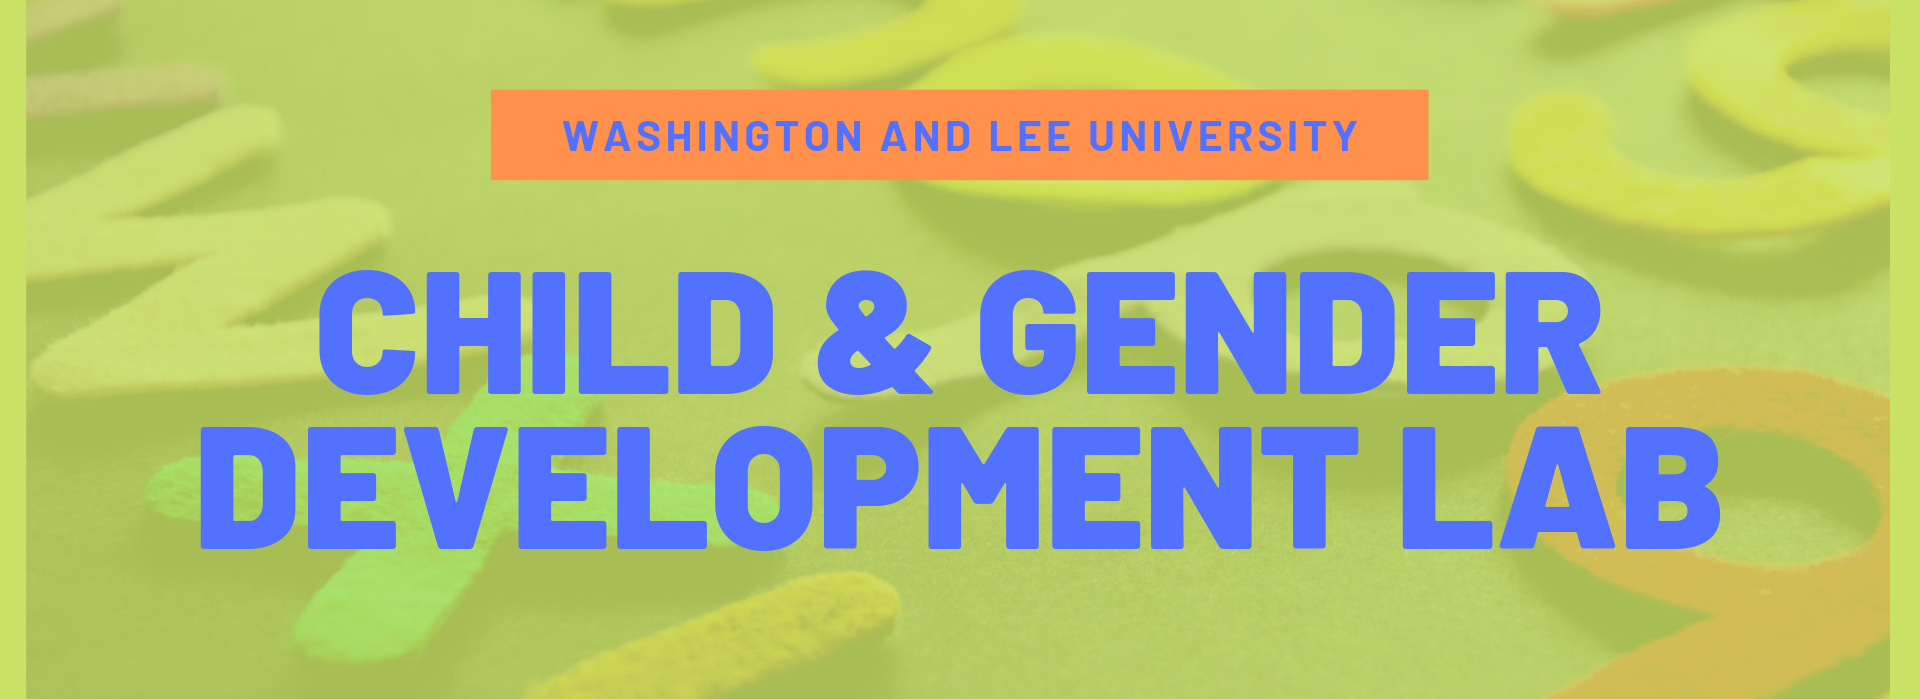 Child & Gender Development Lab